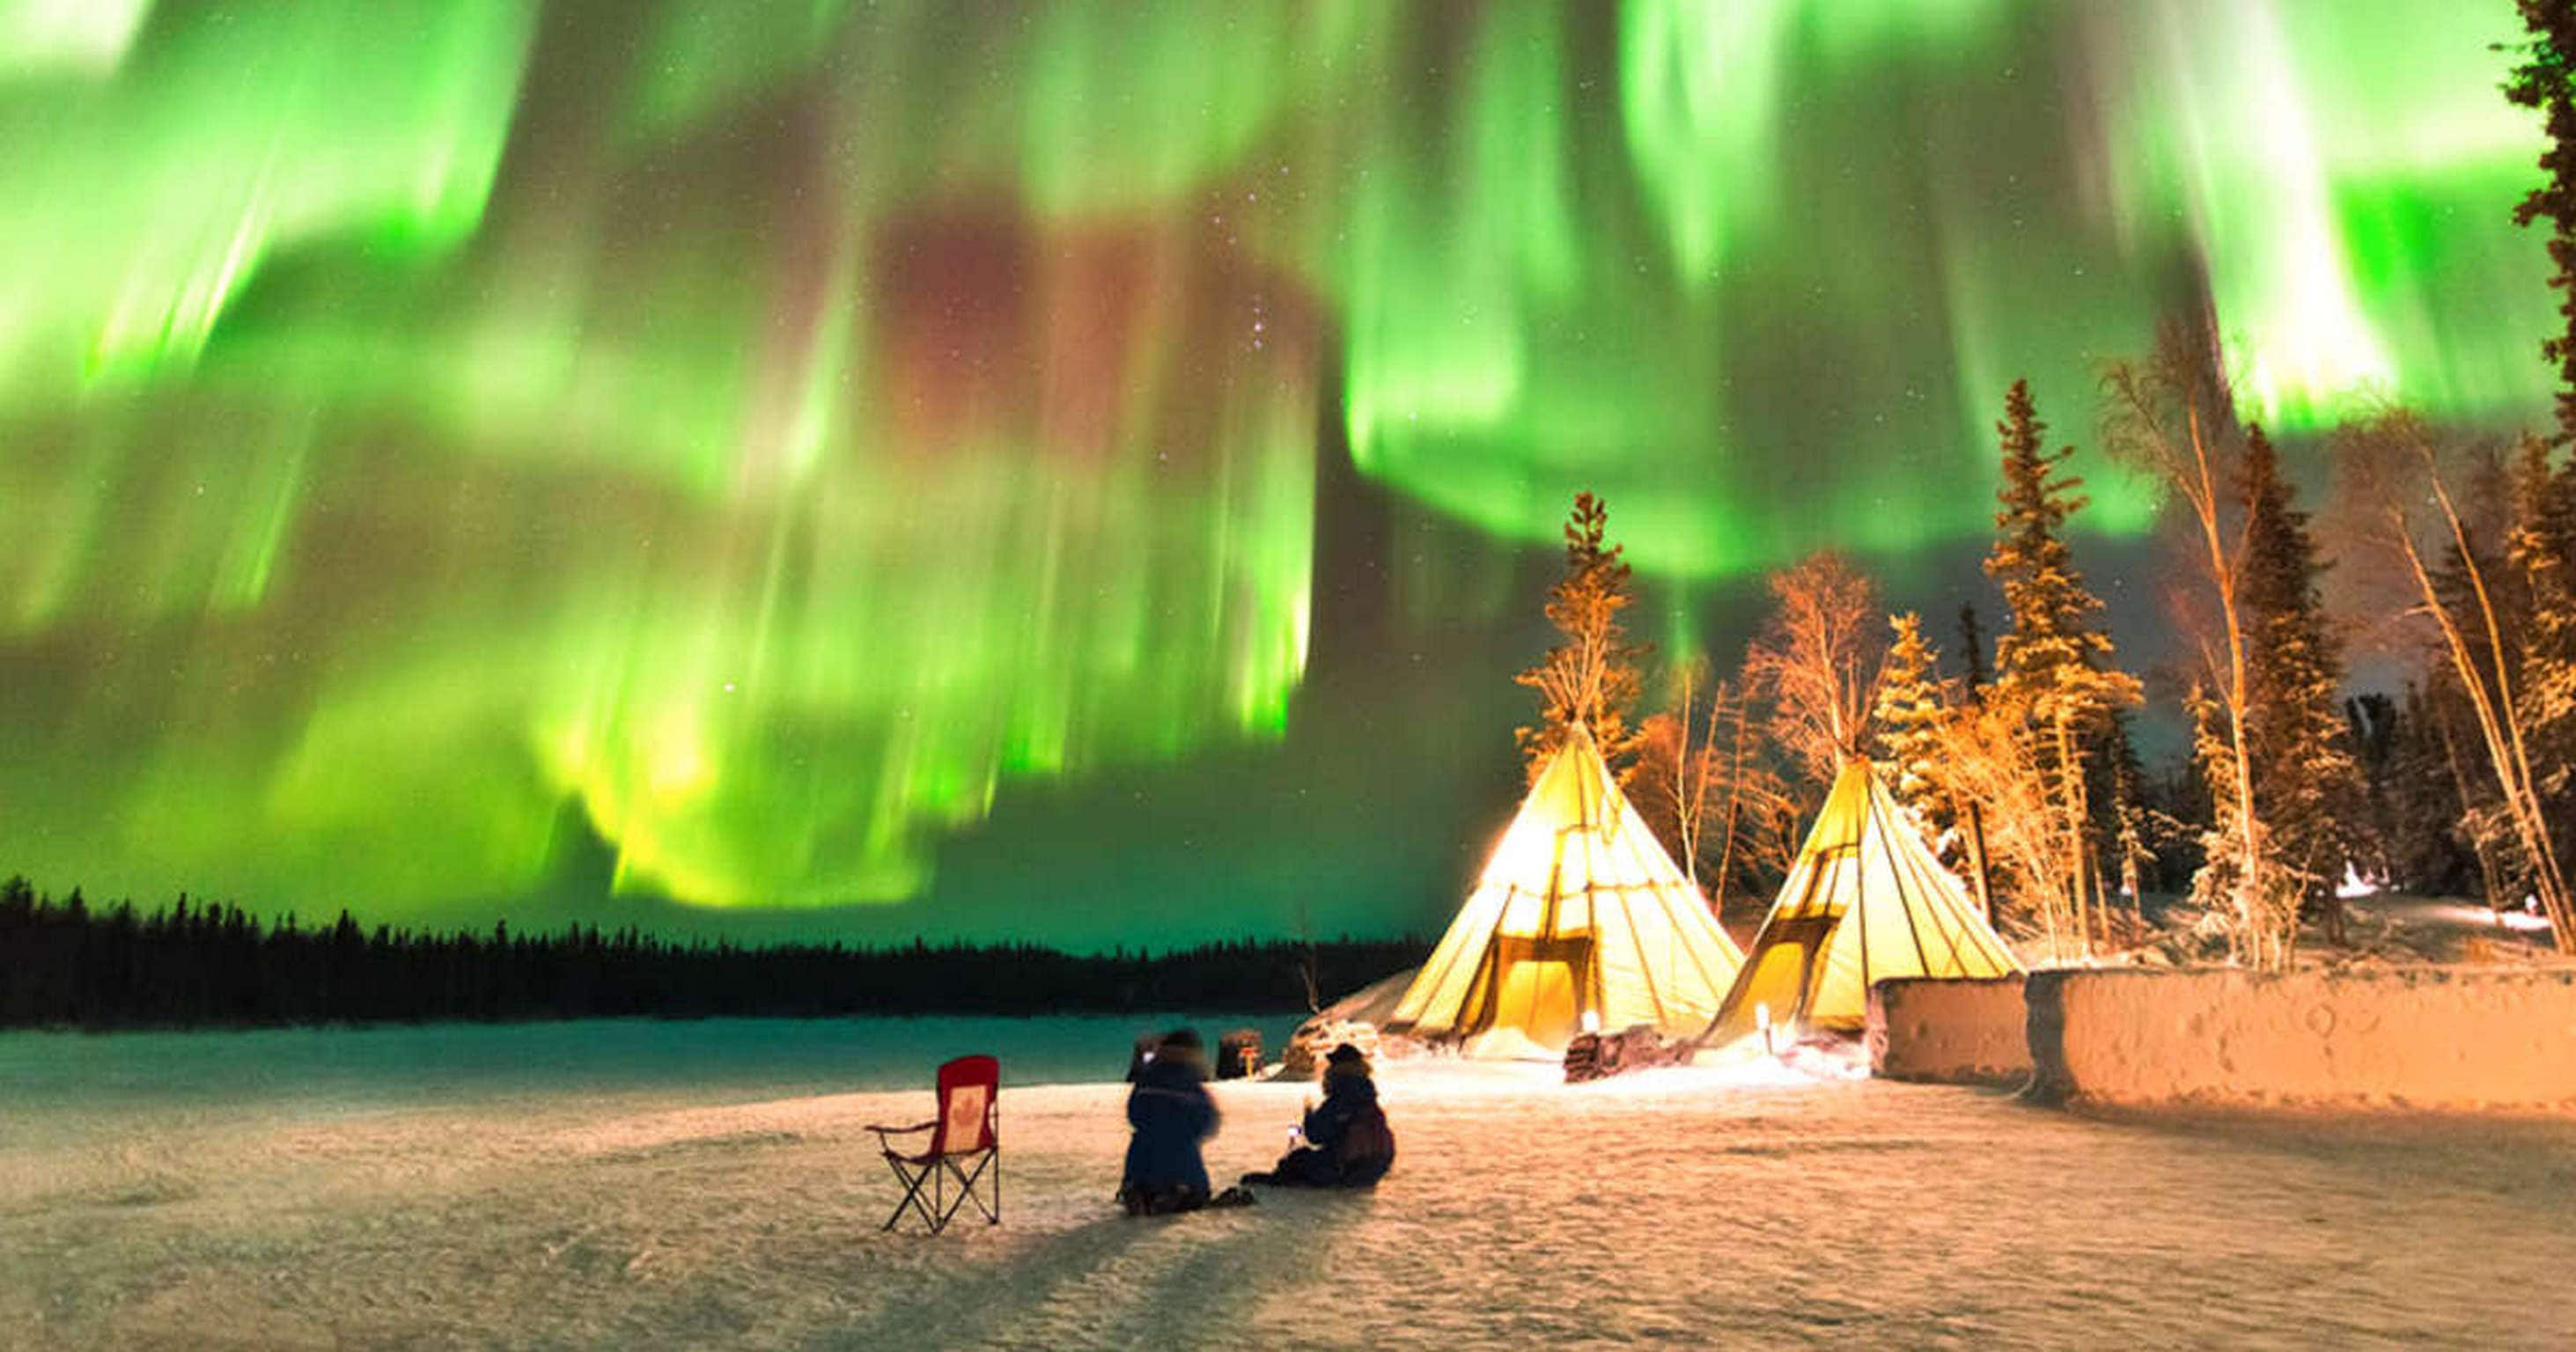 Yellowknife, Great Slave Lake Ice-Fishing & Dog Sledding & Aurora Viewing One Day Outdoor Tour